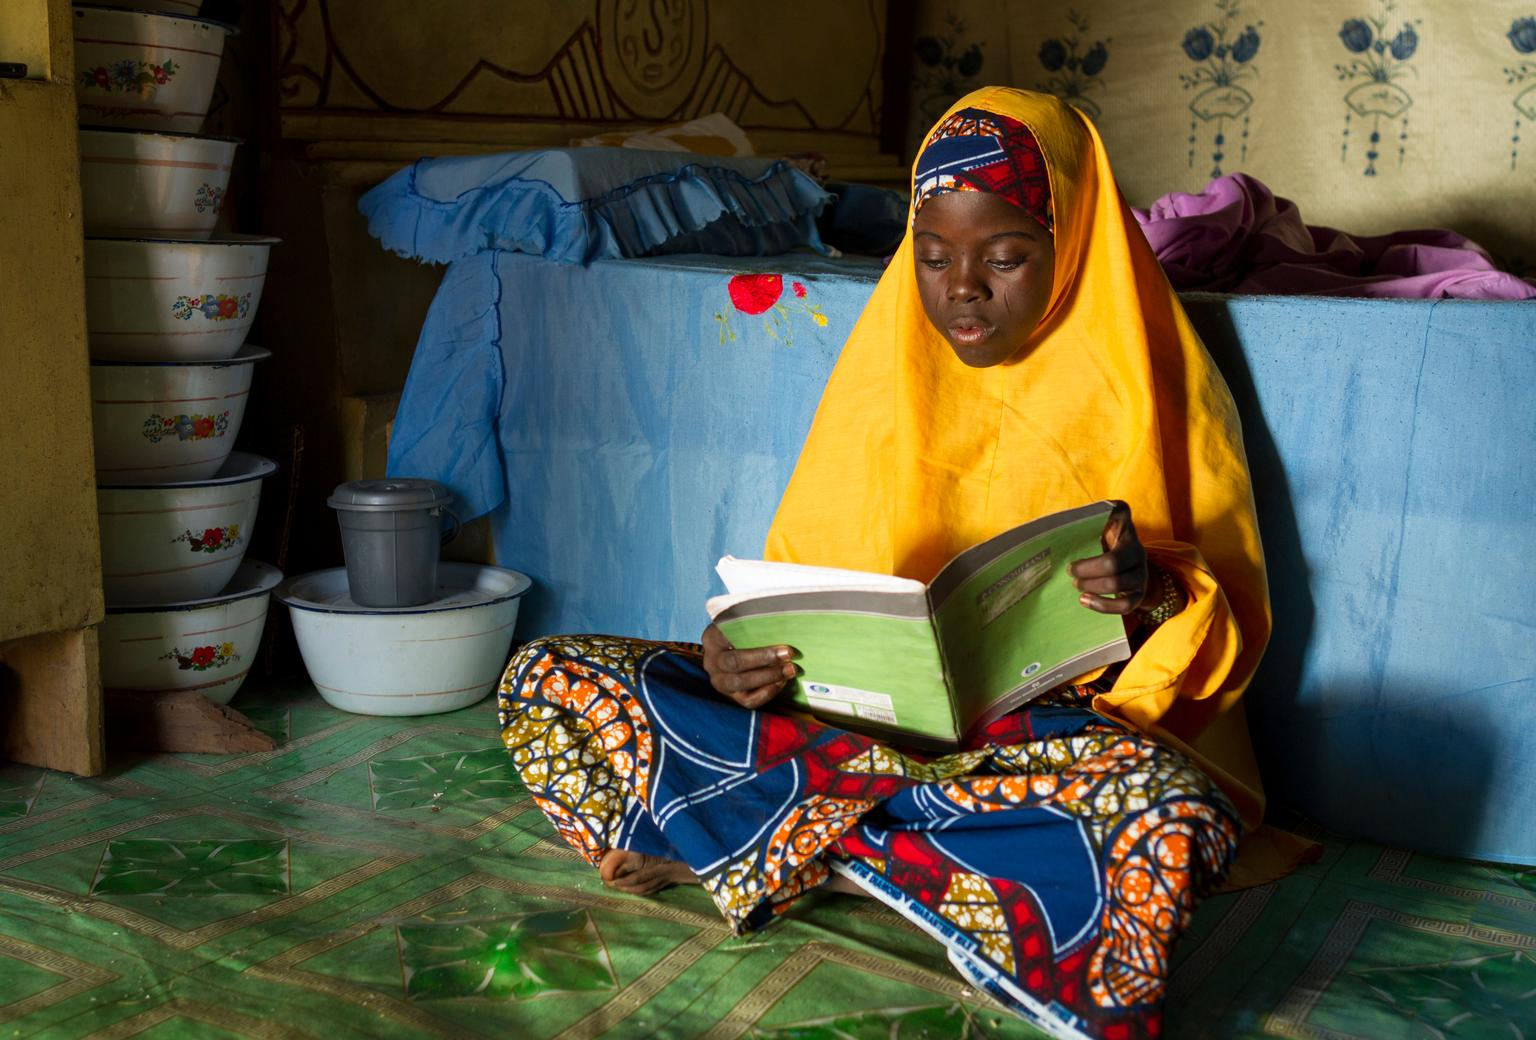 Hamamatou (15), from Niger, is the recipient of a UNICEF-supported girls' scholarship that is helping her stay in school.